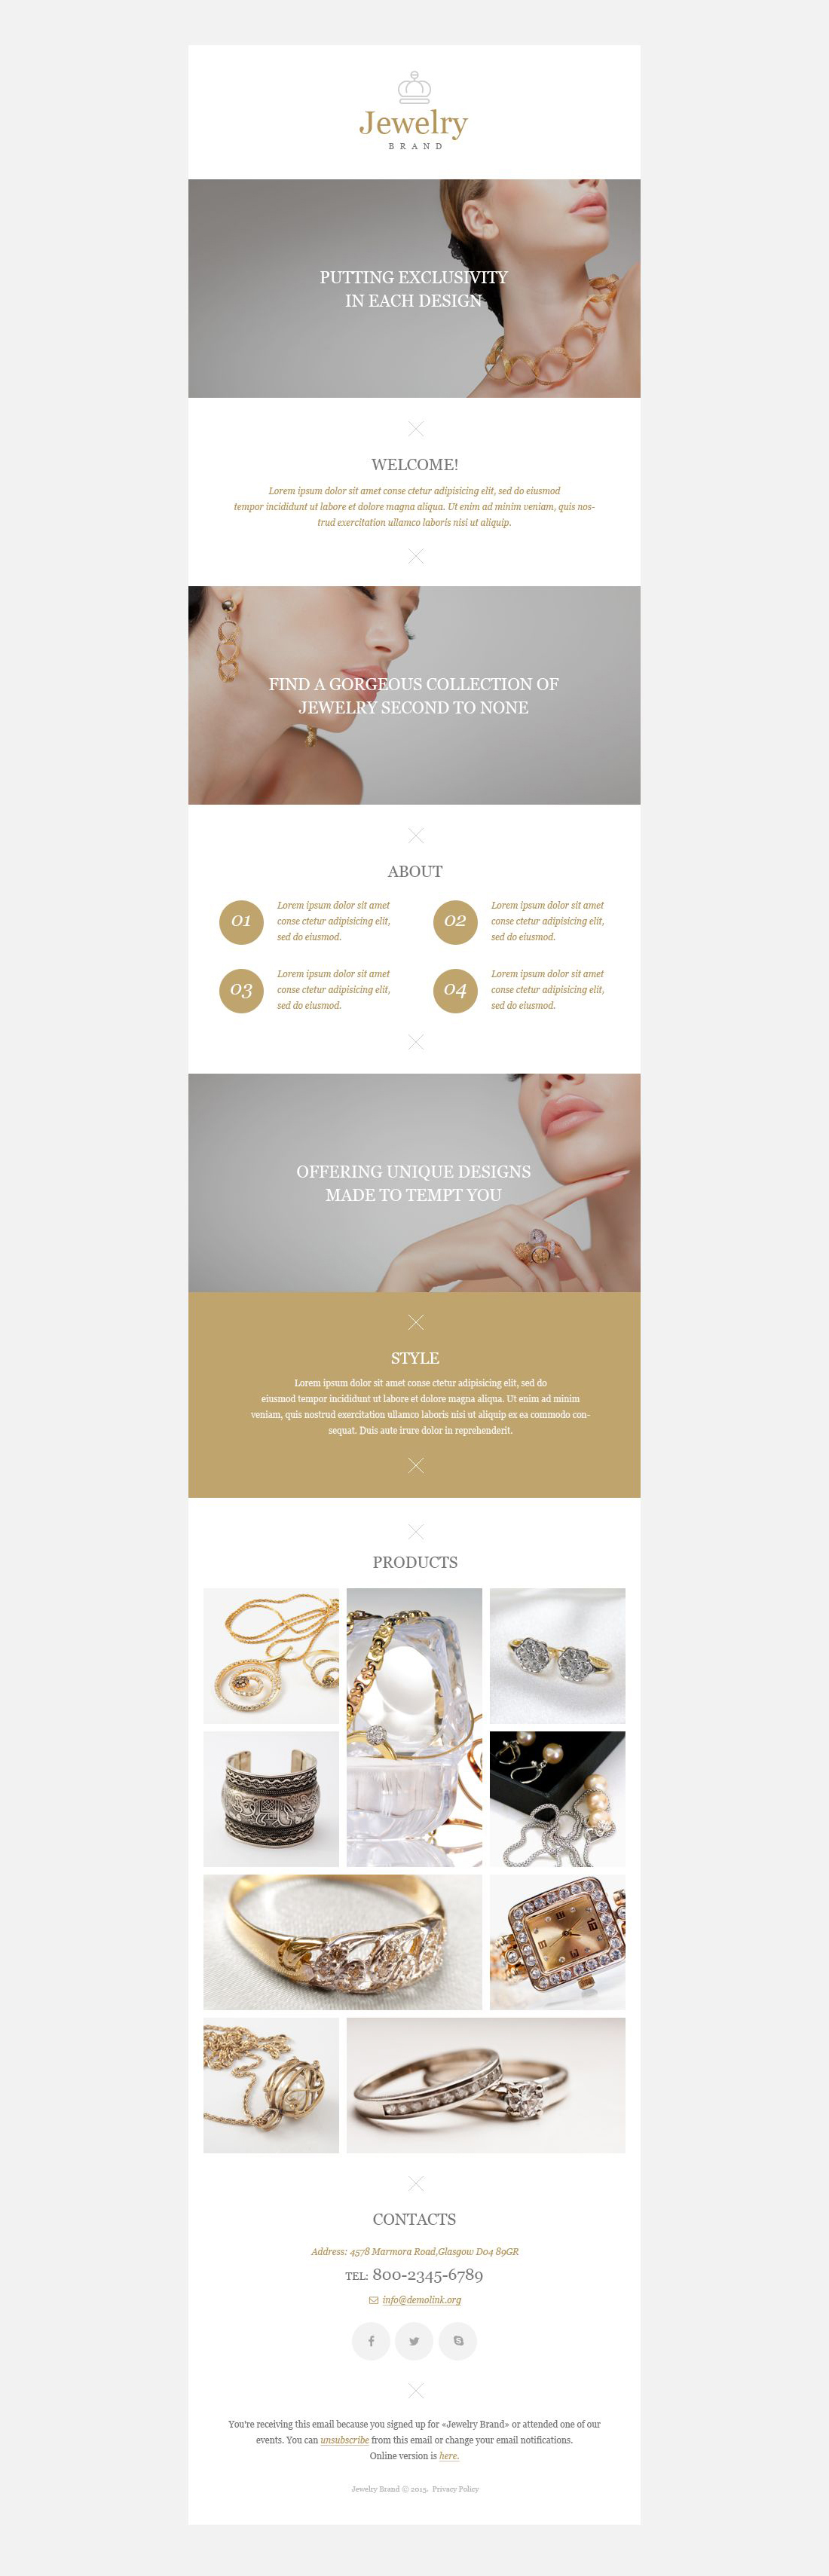 Jewelry responsive newsletter template 52988 jewelry responsive newsletter template spiritdancerdesigns Images